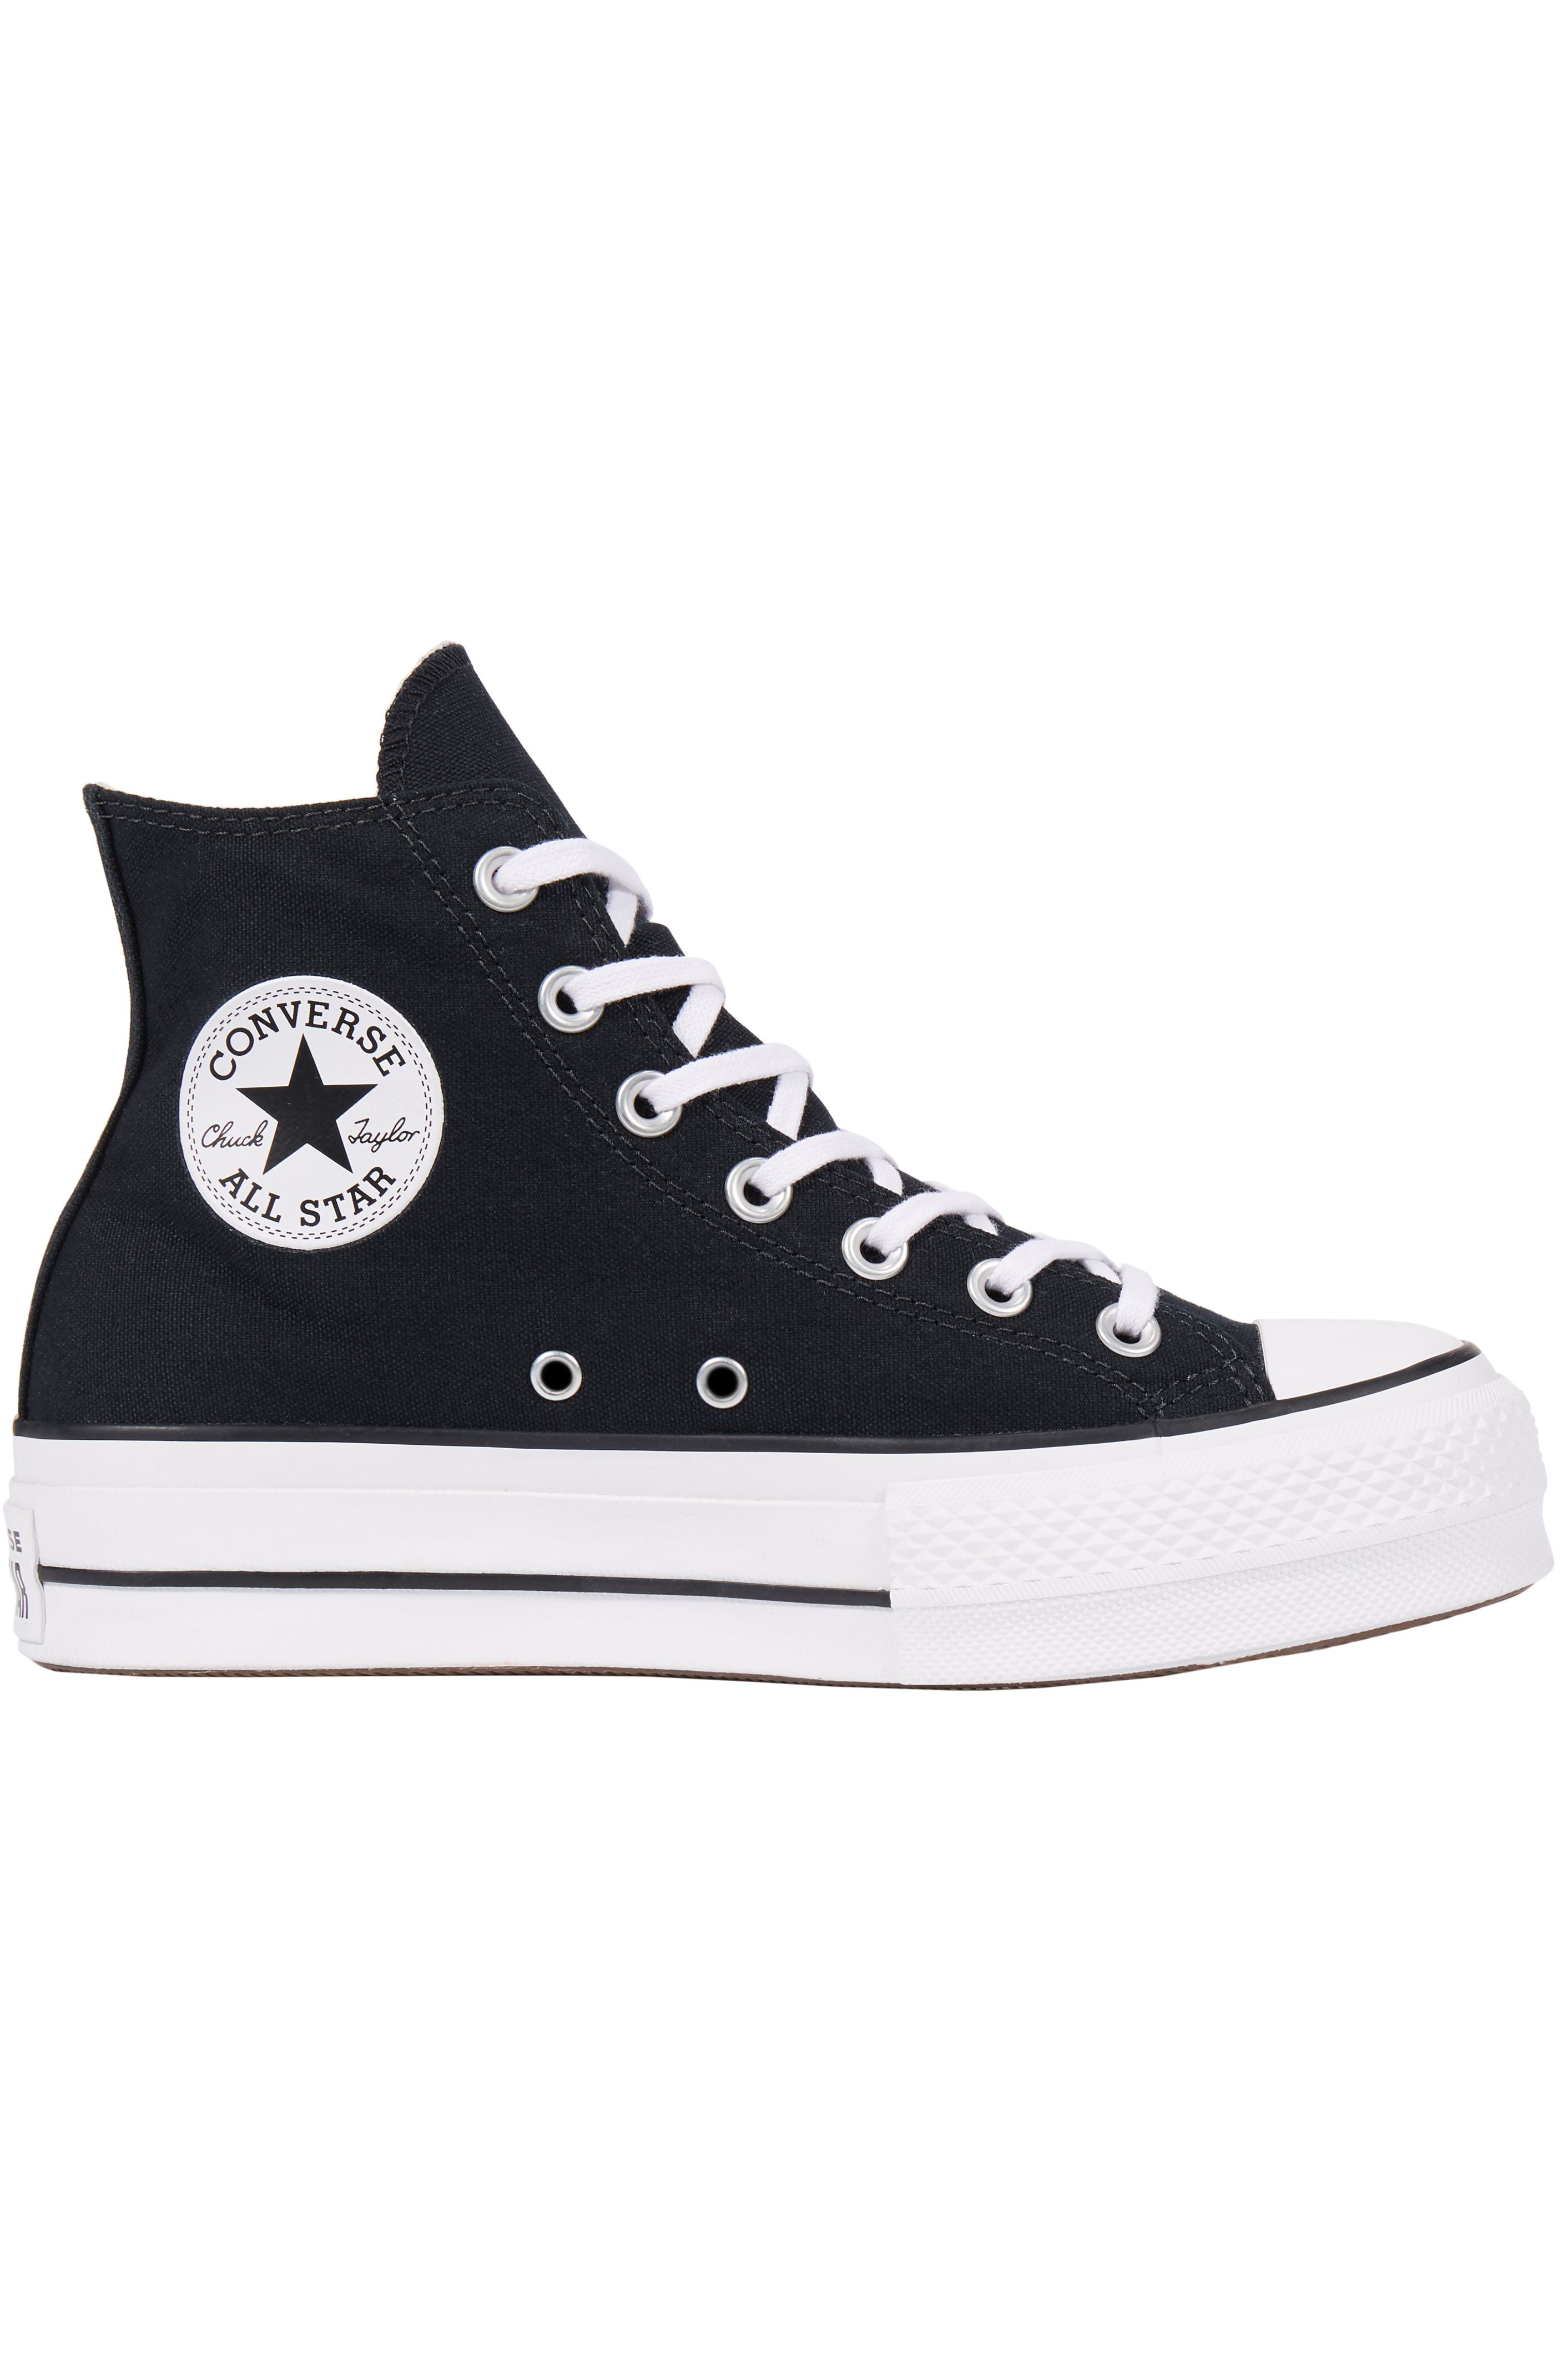 Tenis Converse CHUCK TAYLOR ALL STAR LIFT HI Black/White/White